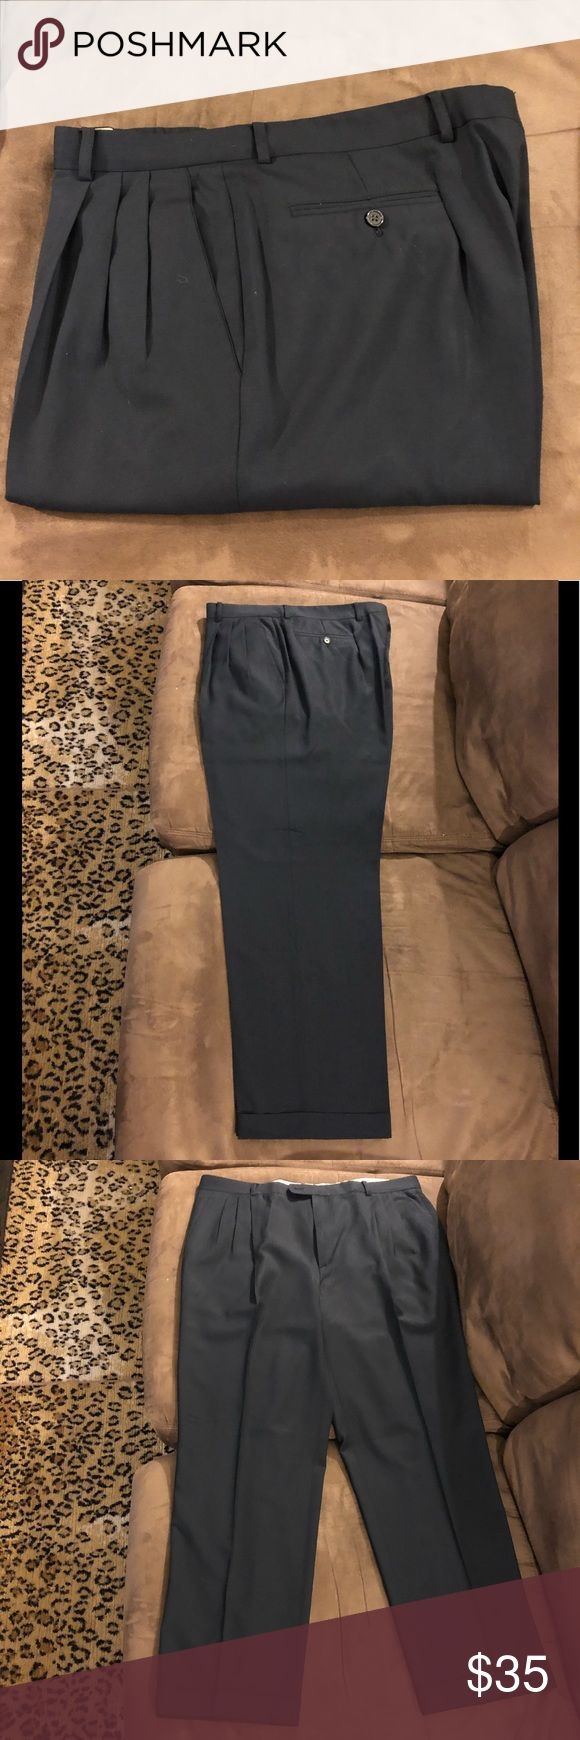 Zanella Solid Navy Blue Dress Pants 38x31 Zanella Solid Navy Blue Dress Pants size 38x31, Pleated and cuffed! Good condition! Please make reasonable offers and bundle! Ask questions :) Zanella Pants Dress